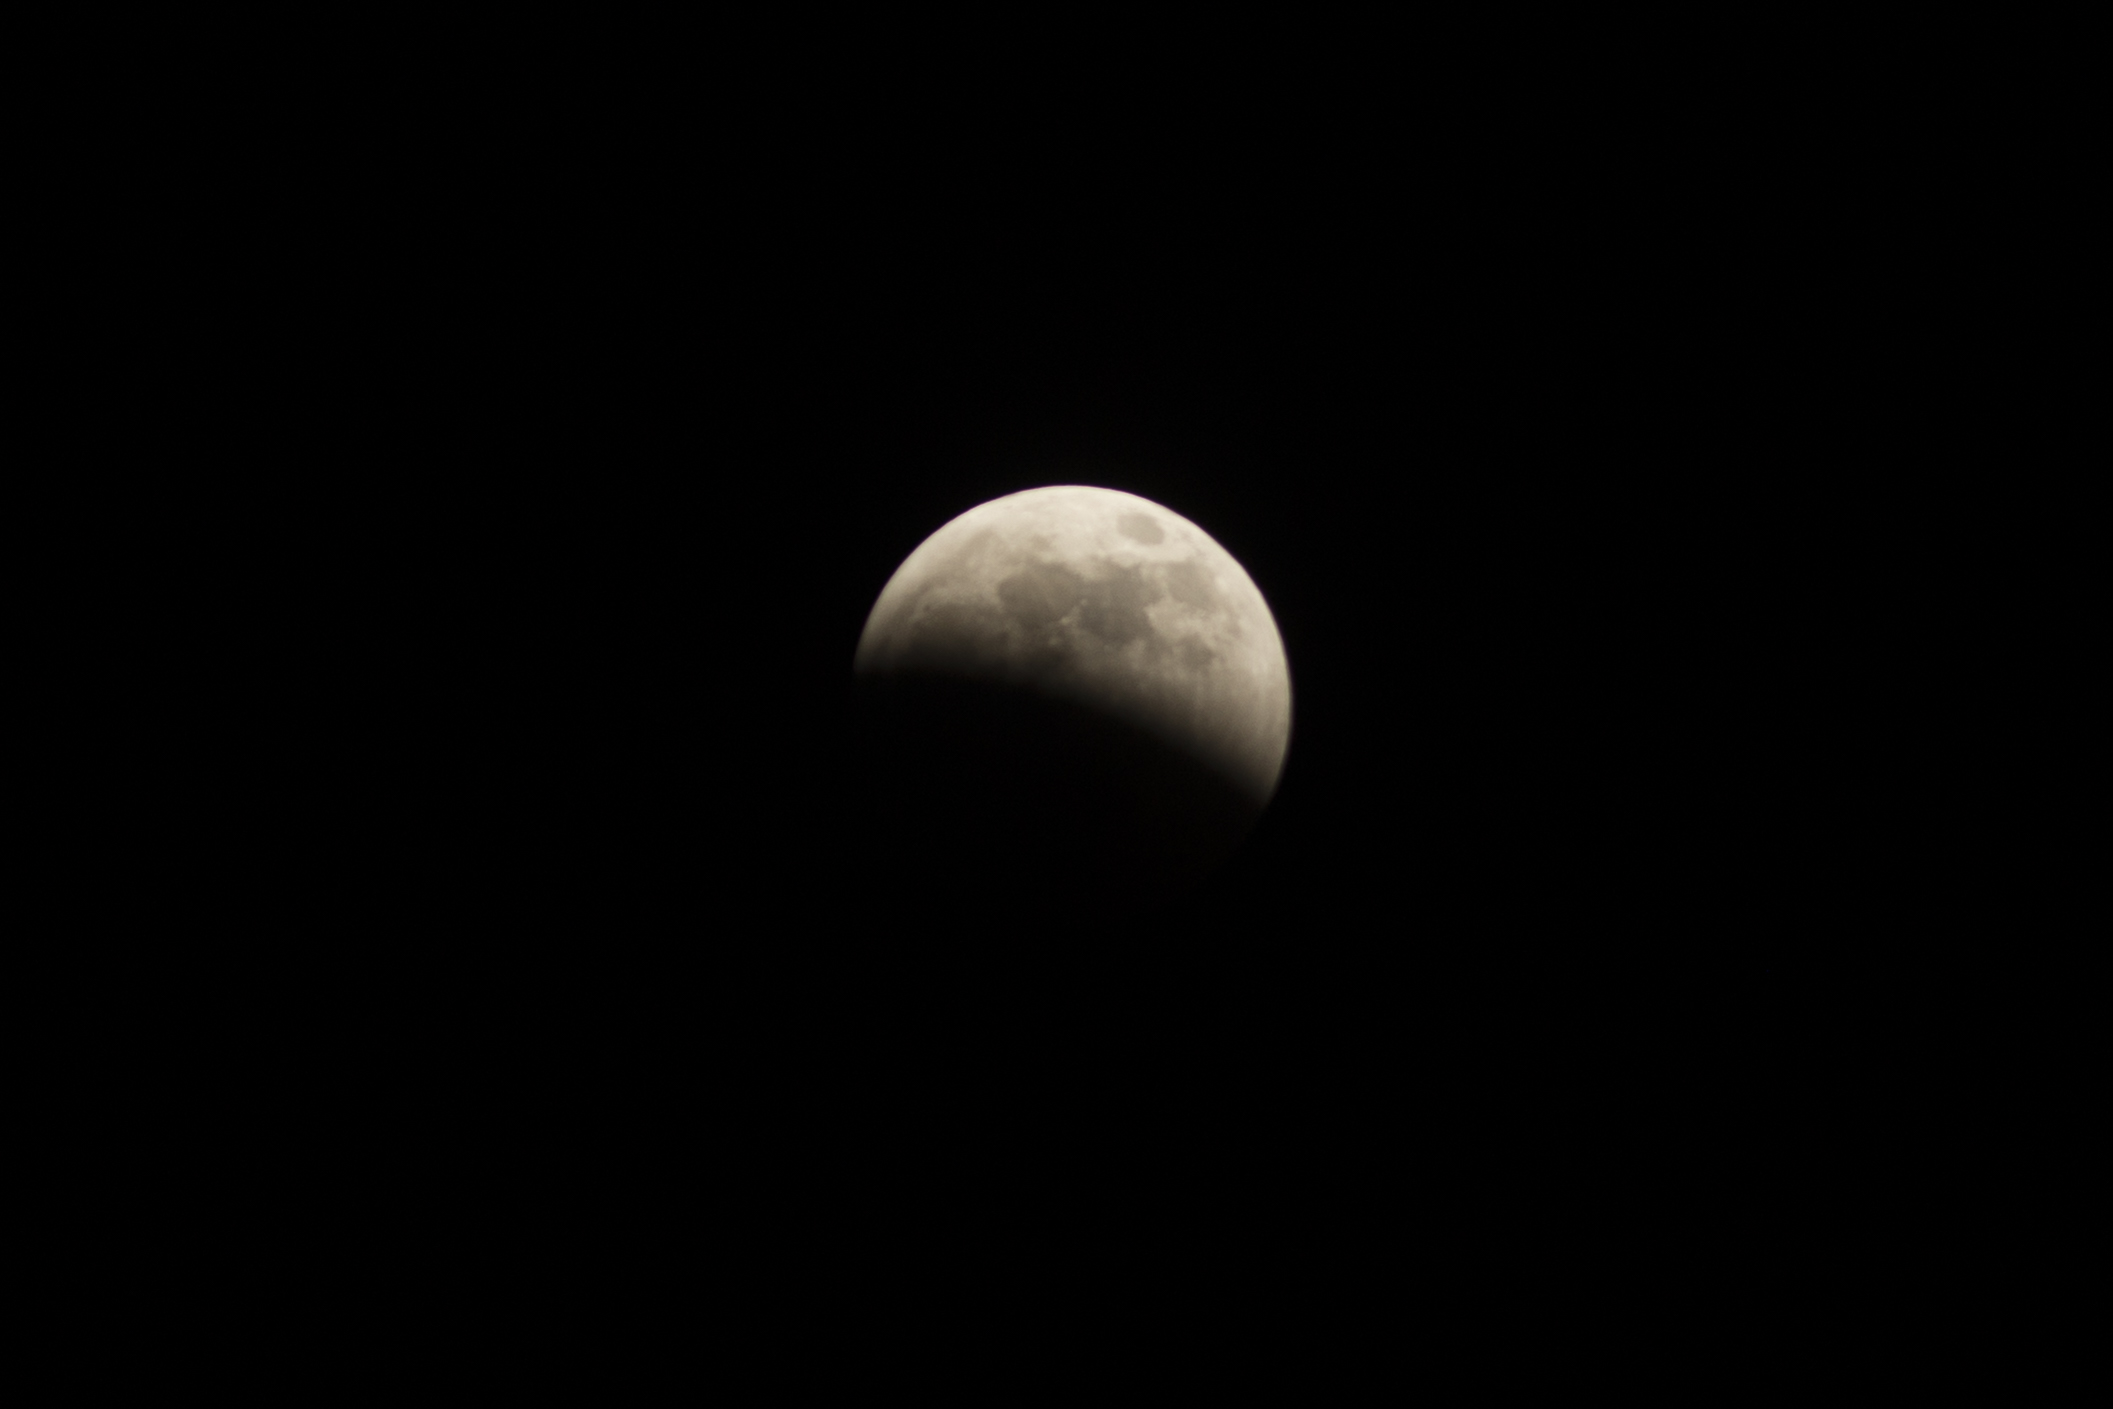 Partial lunar eclipse - midway